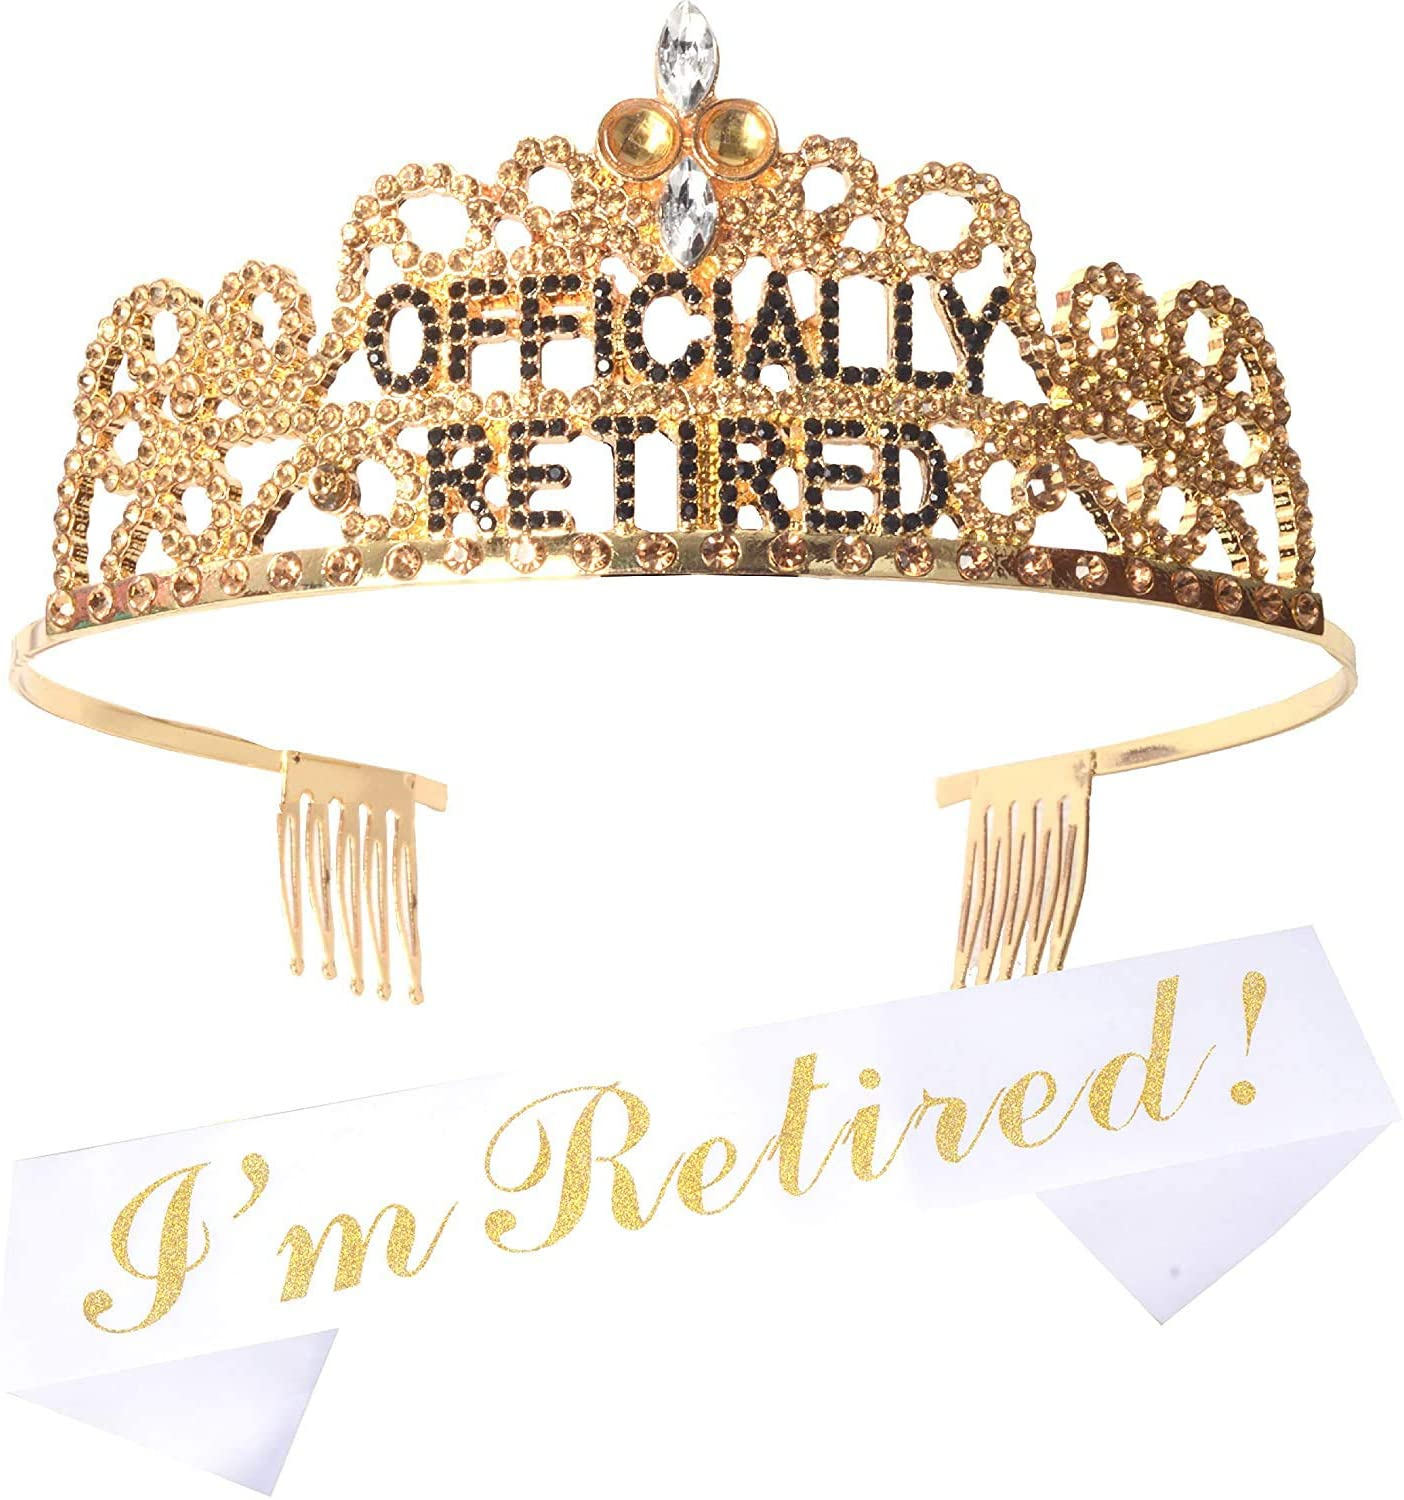 A Retirement Crown Or Sash